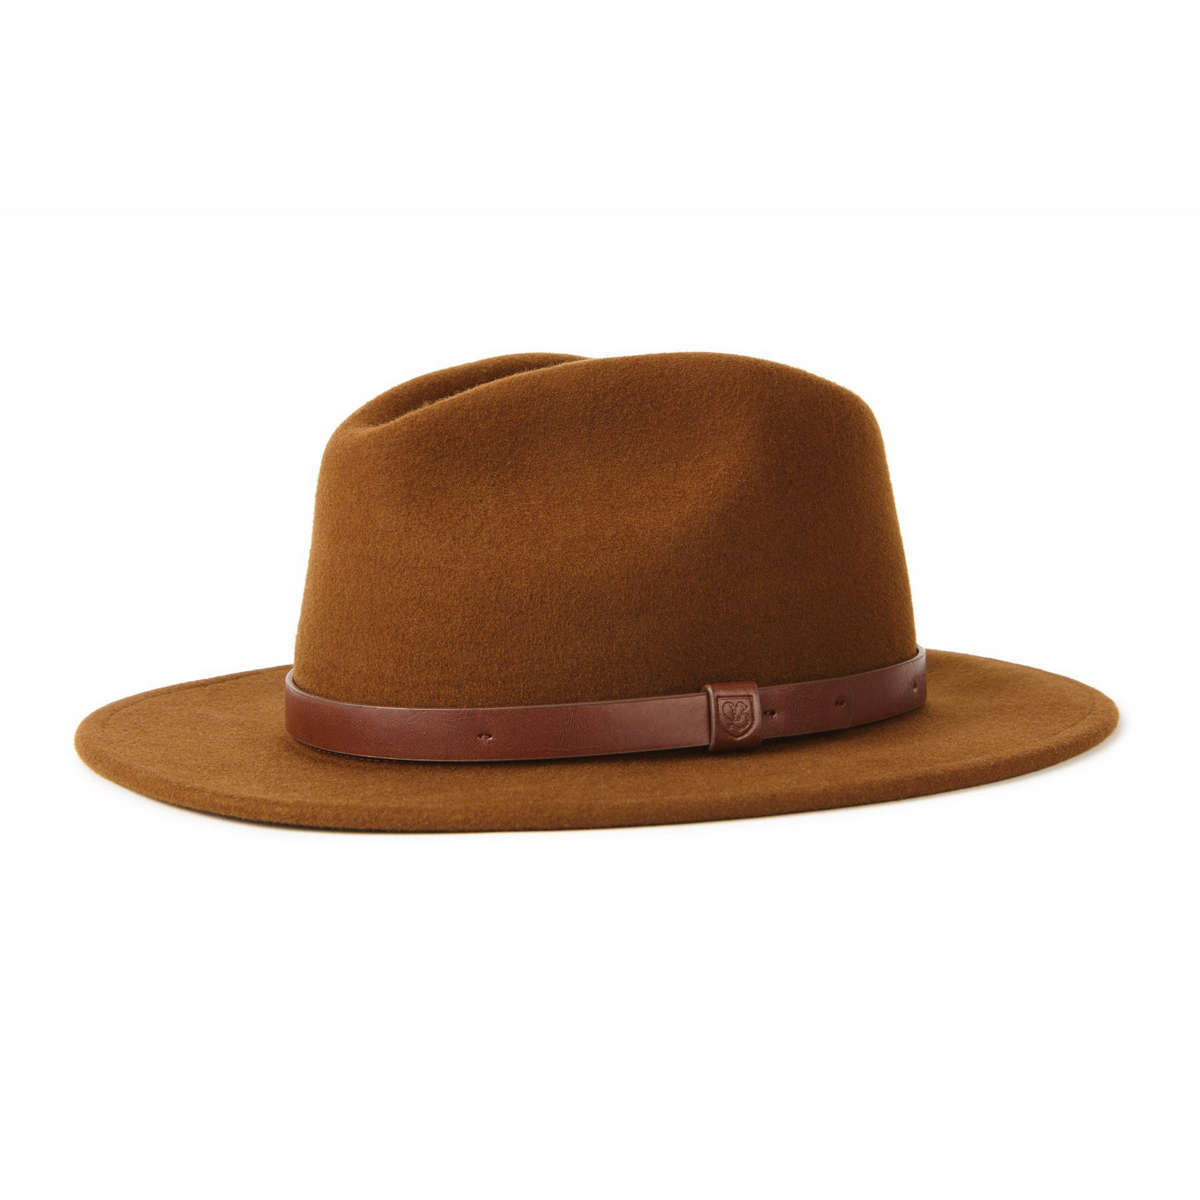 Messer Fedora - Coffee - LAST ONE!